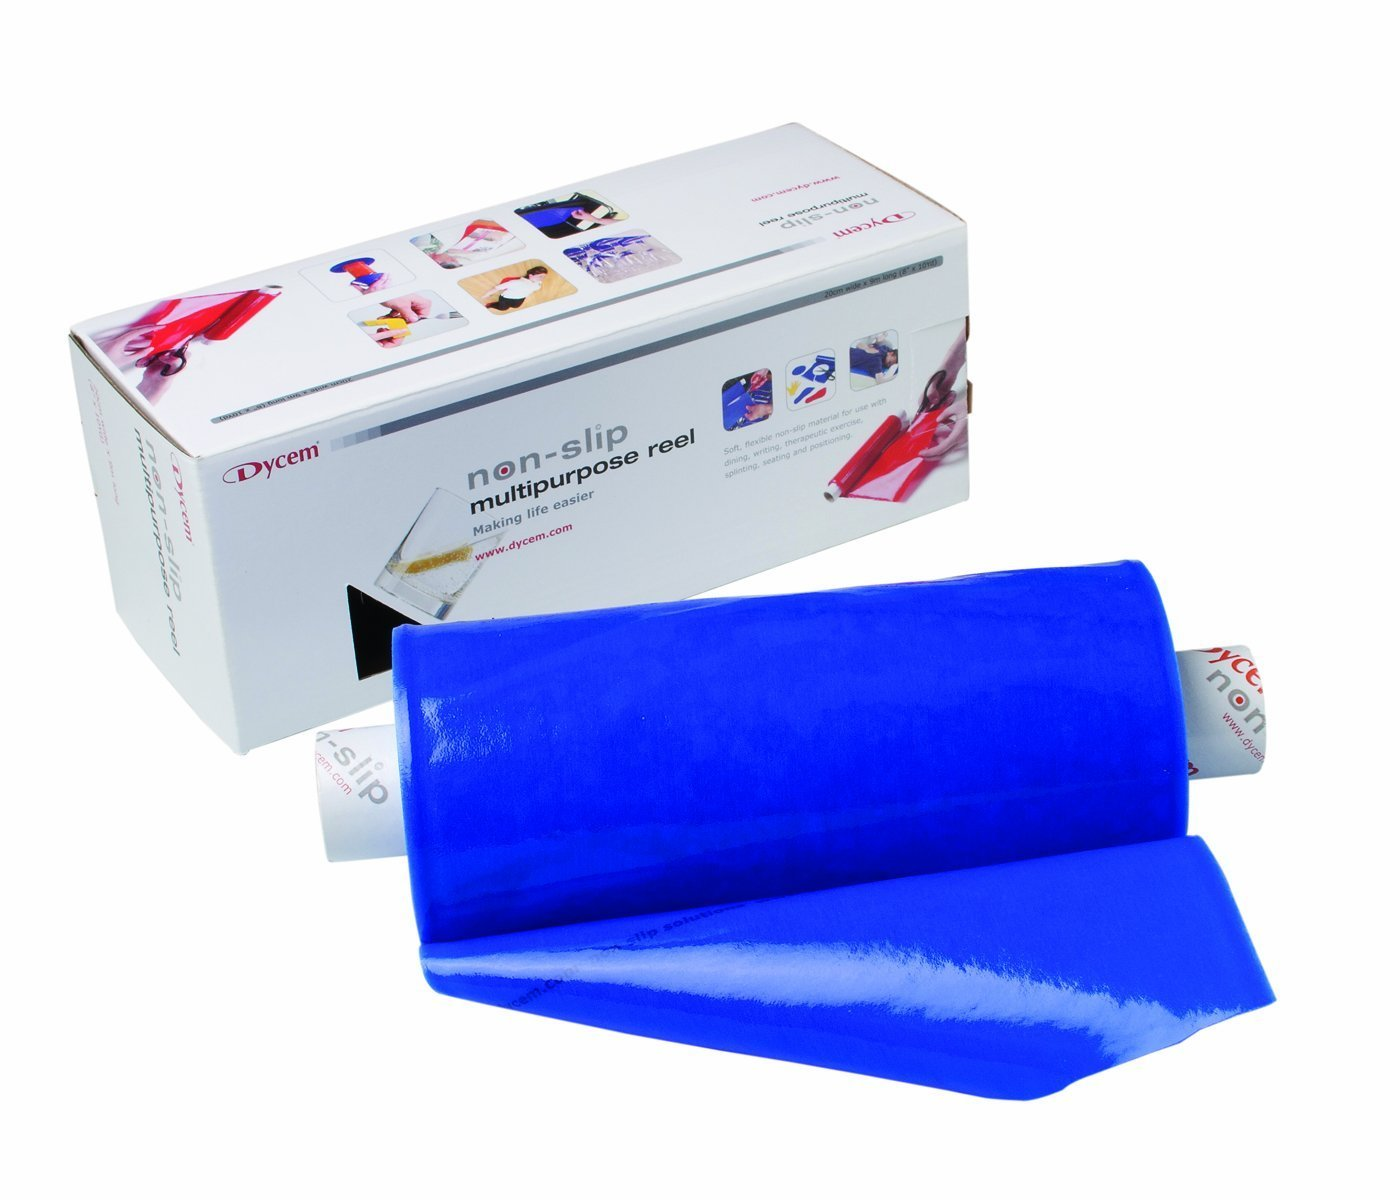 Dycem??non-slip material, roll, 8''x6-1/2 foot, blue by Dycem_